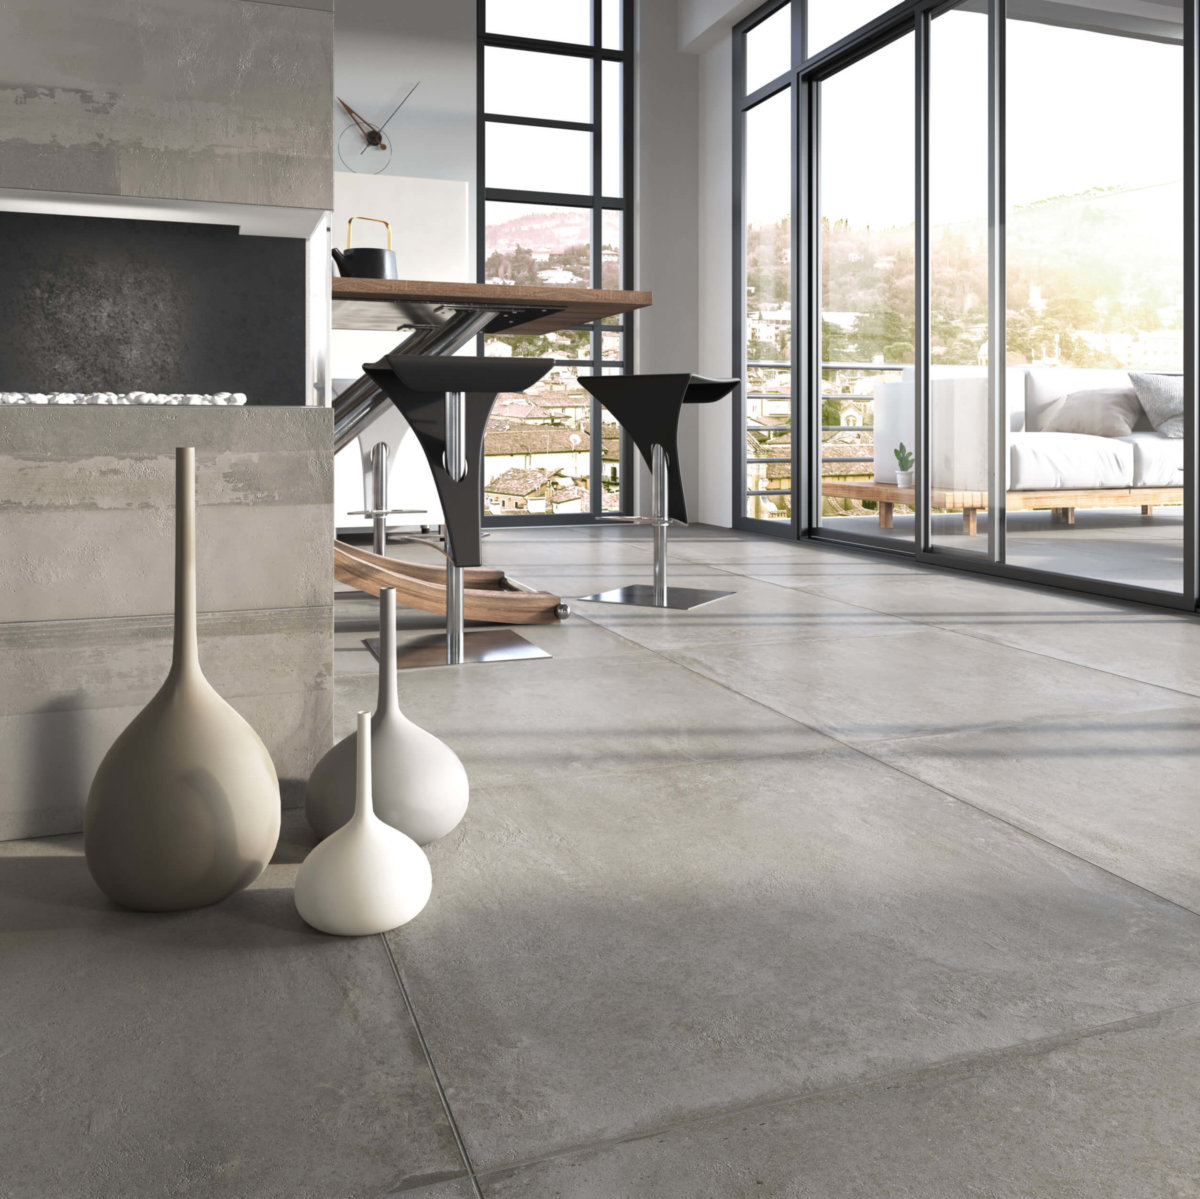 Terre Grigio Natural Rett 800x800mm_Stiles_Lifestyle2_Image